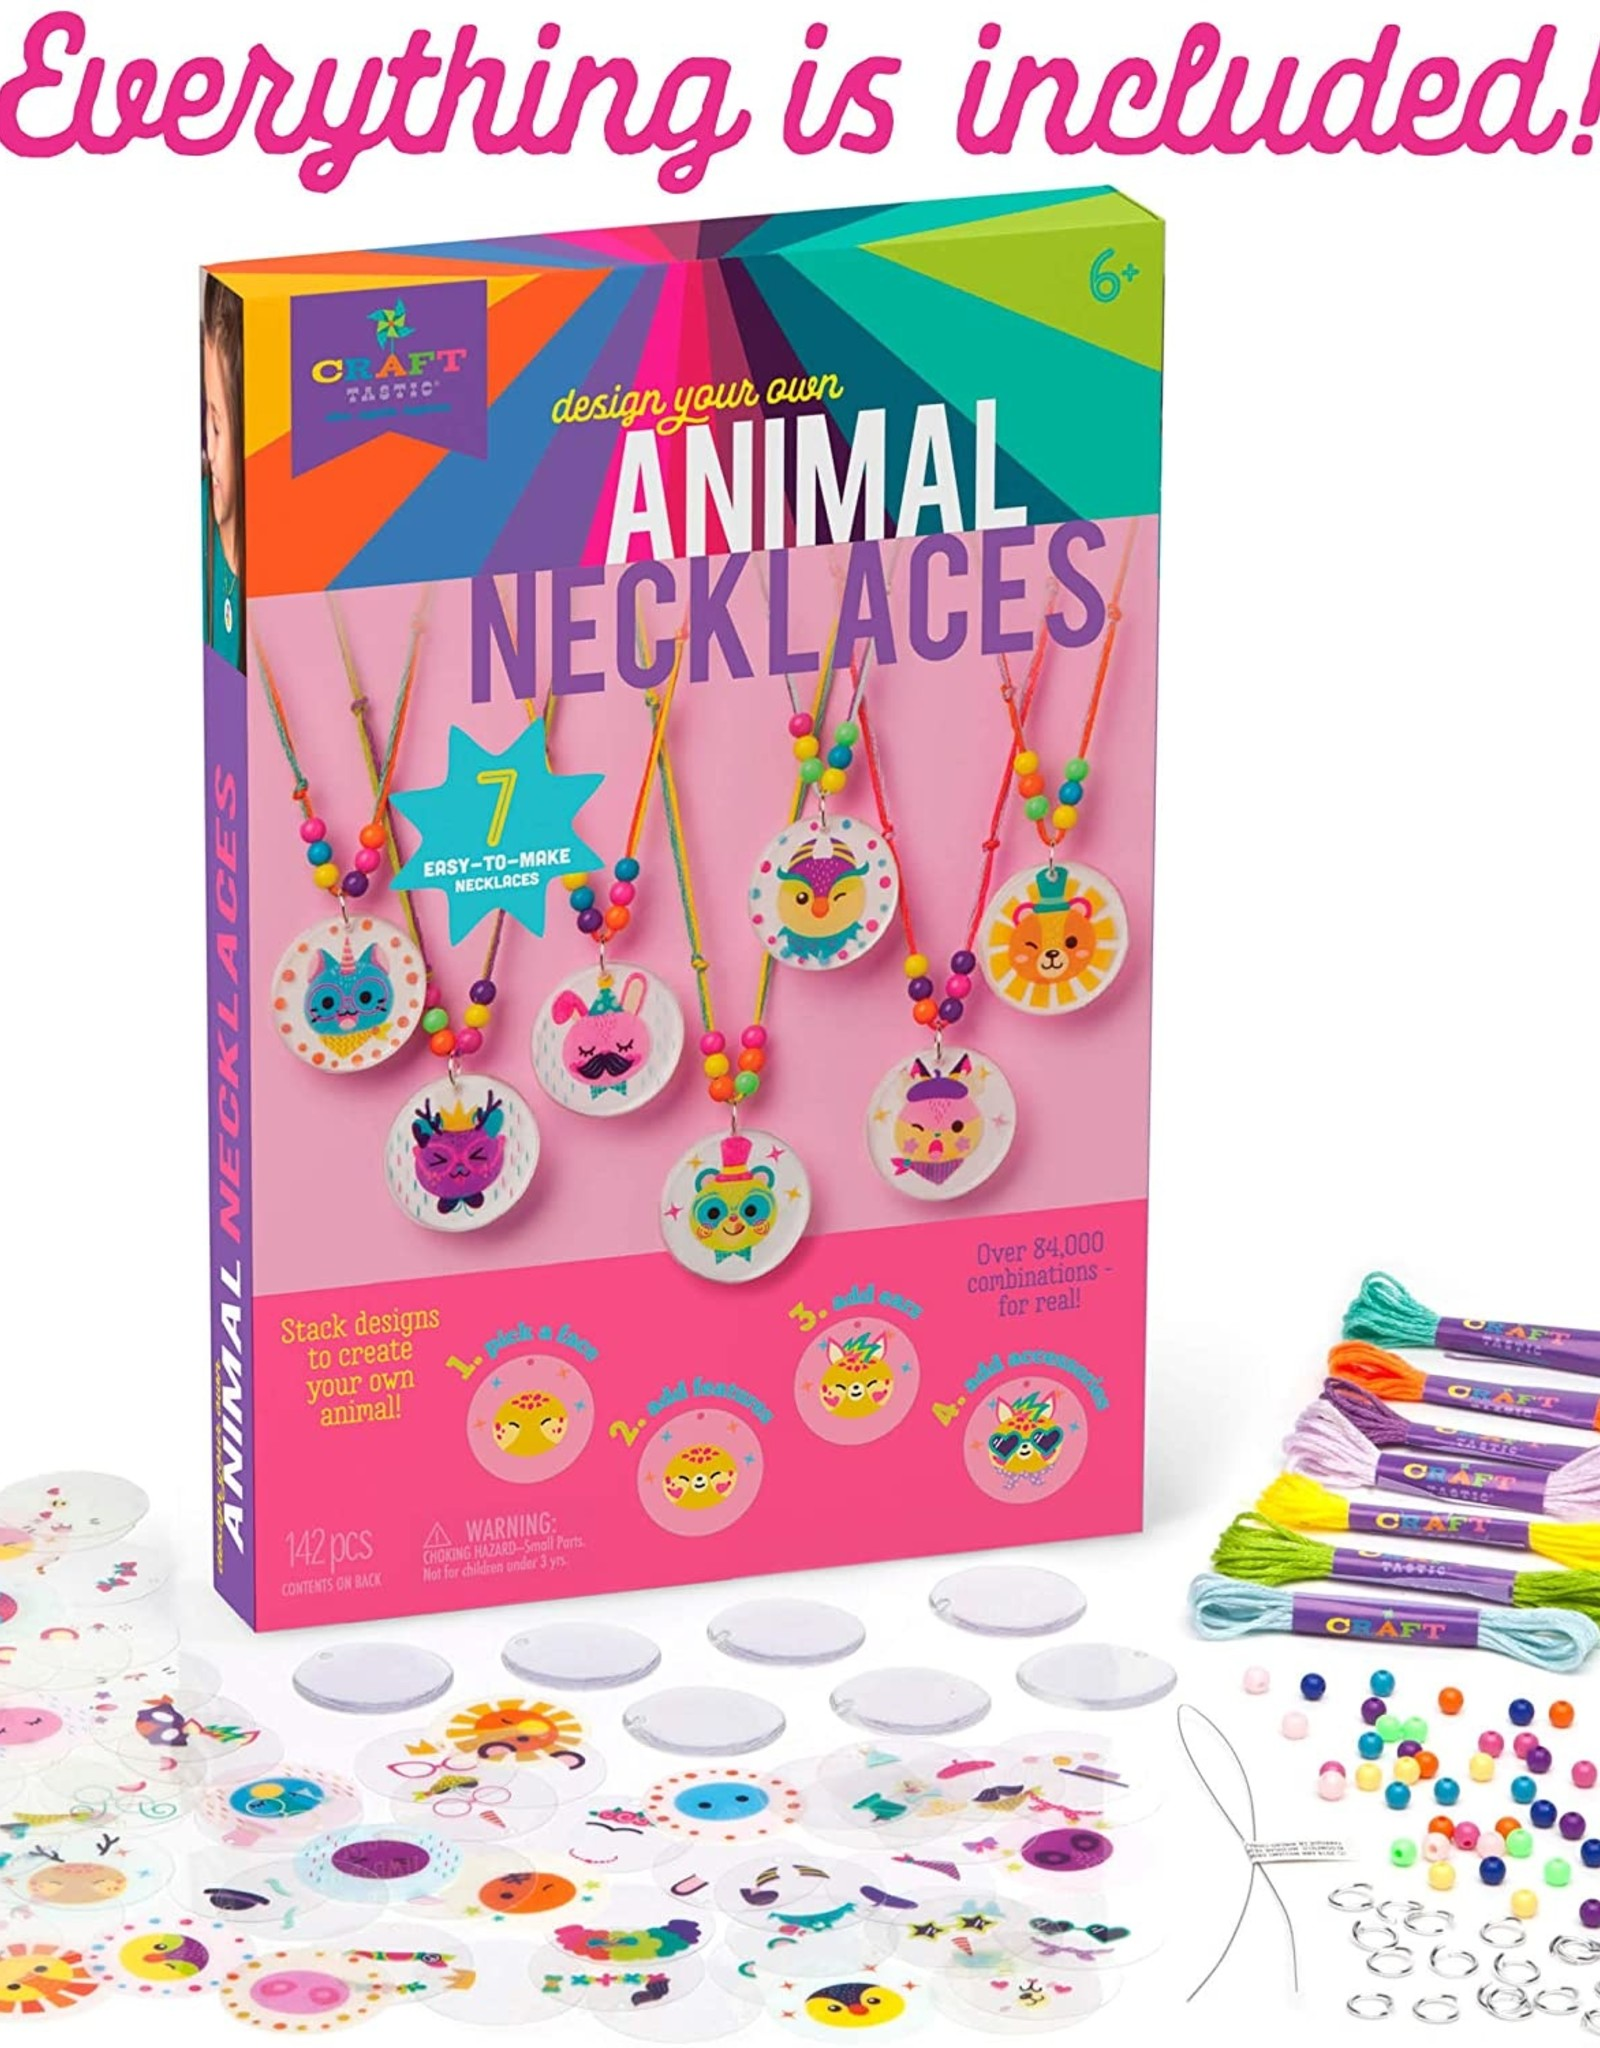 Craft-tastic Layered Animal Necklaces